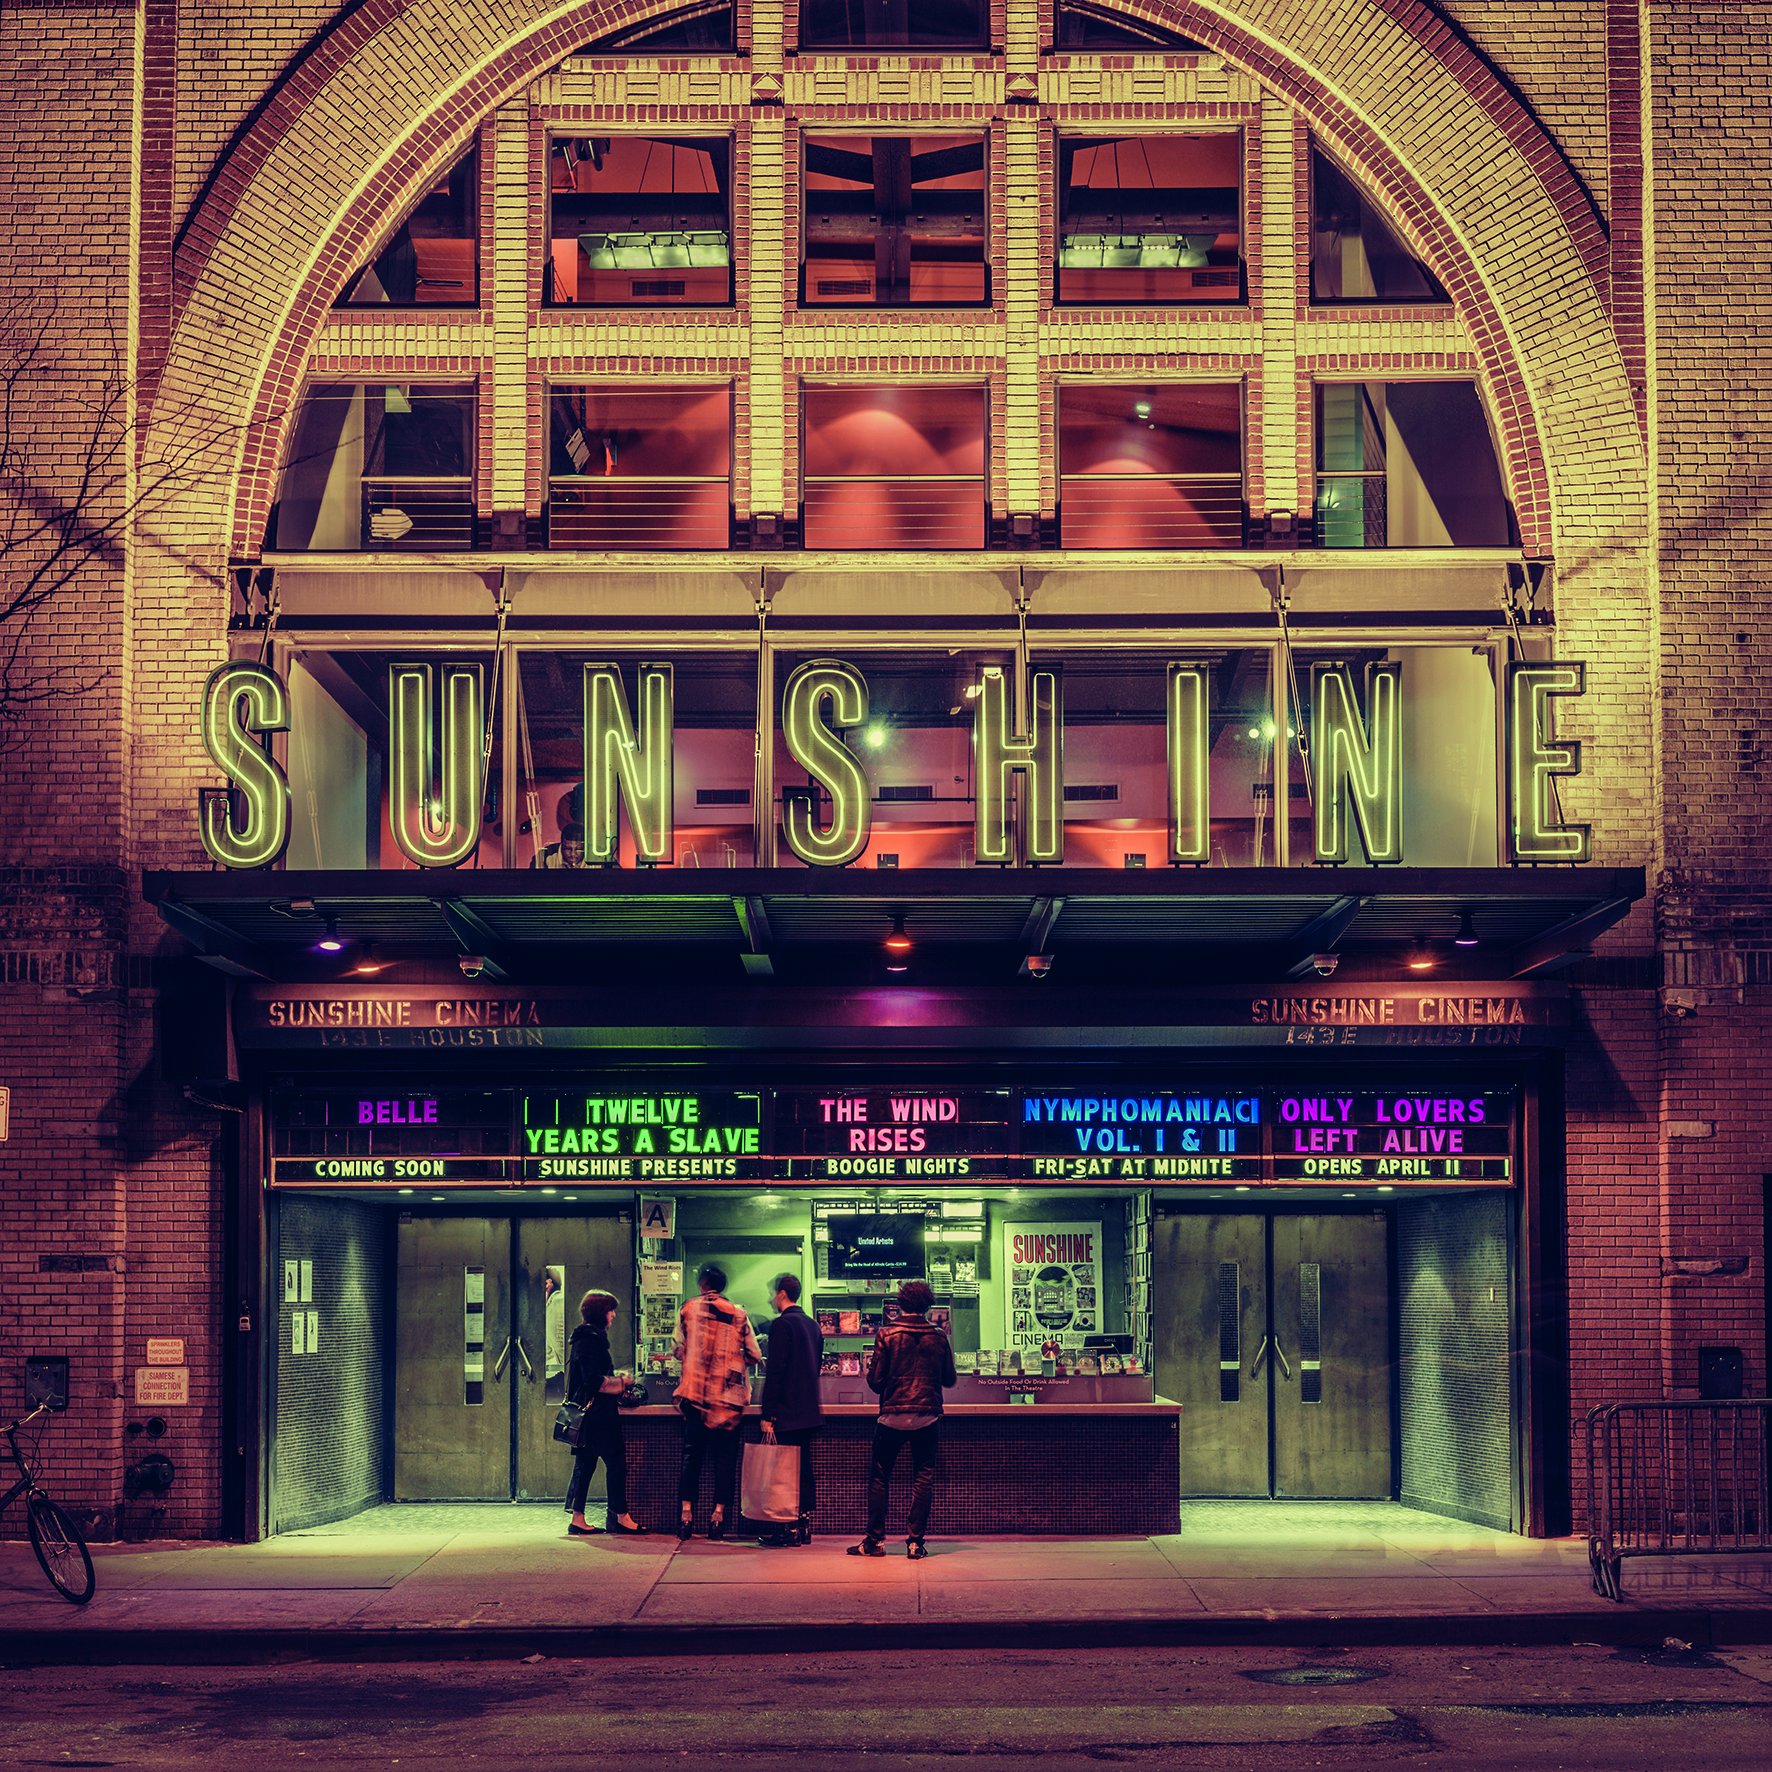 © Light On New City by Franck Bohbot, published by teNeues and YellowKorner, www.teneues.com, www.yellowkorner.com. Sunshine Cinema, Lower East Side, Manhattan, 2015, Photo © 2016 Franck Bohbot/INSTITUTE. All rights reserved. www.instituteartist.com